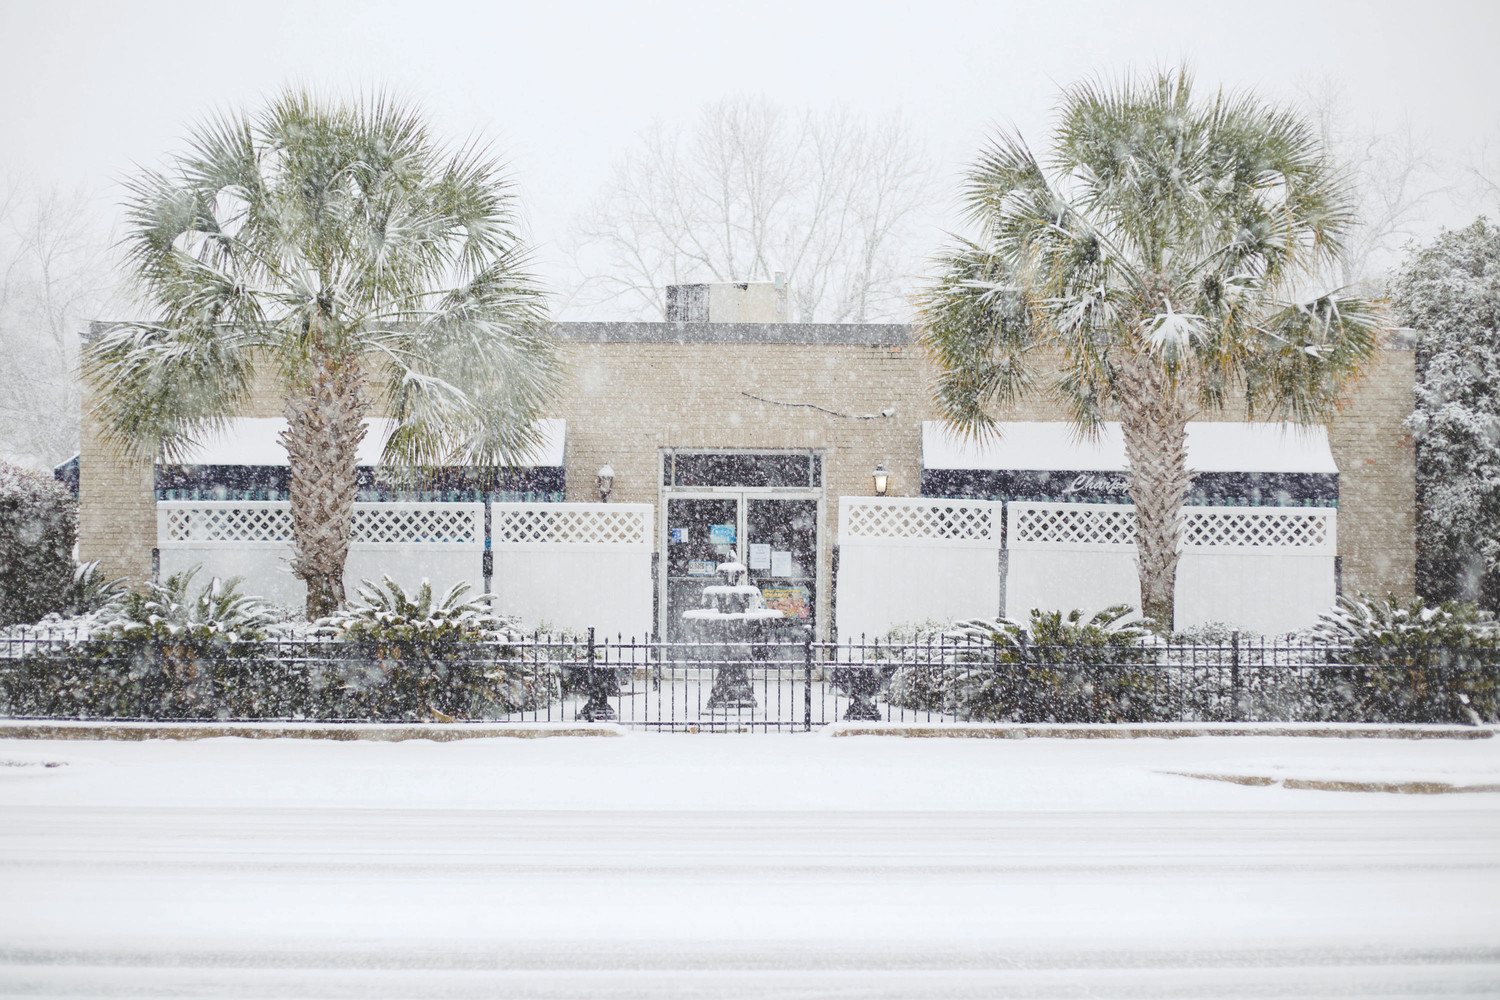 Charpy's Pool Service on Liberty Street is seen during the early January snowfall.